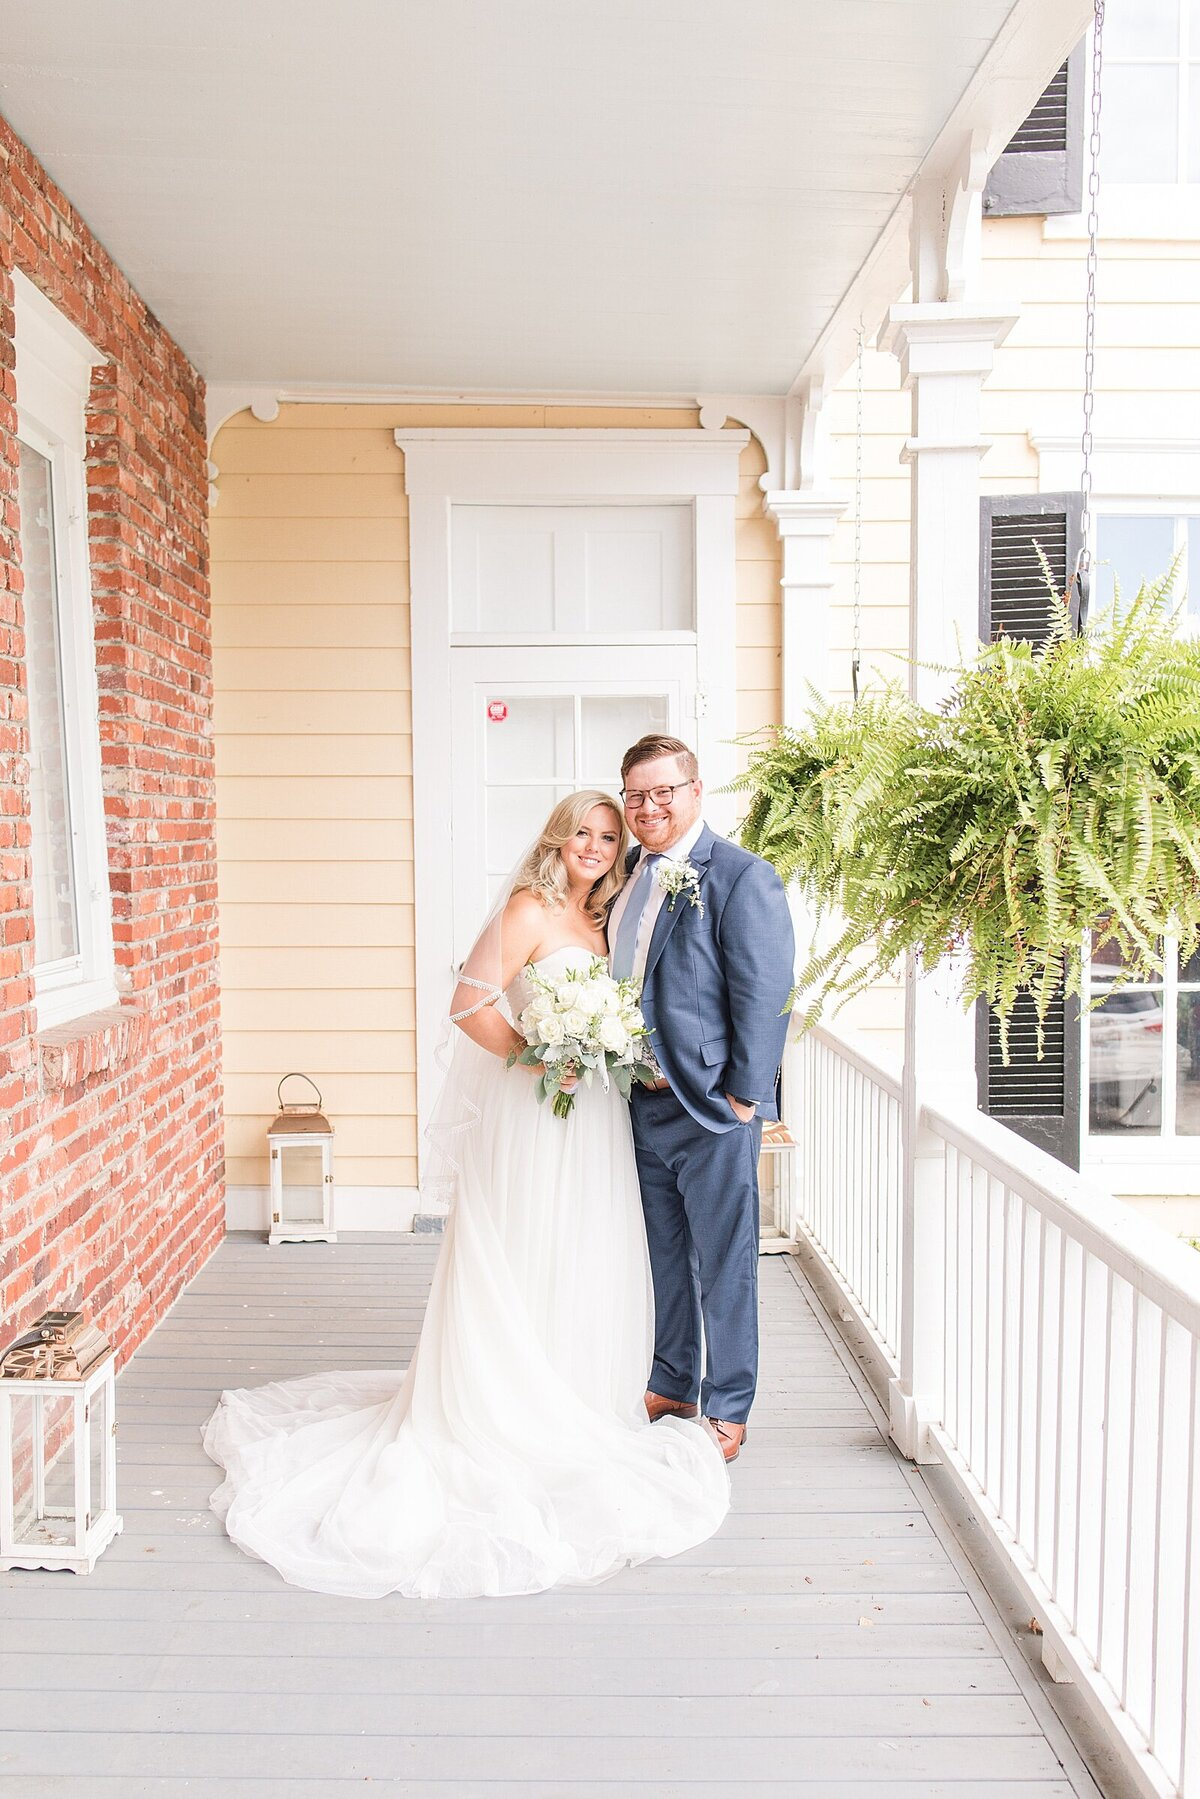 Kara Webster Photography | Mac & Maggie | Bradshaw-Duncan House Louisville, KY Wedding Photographer_0028